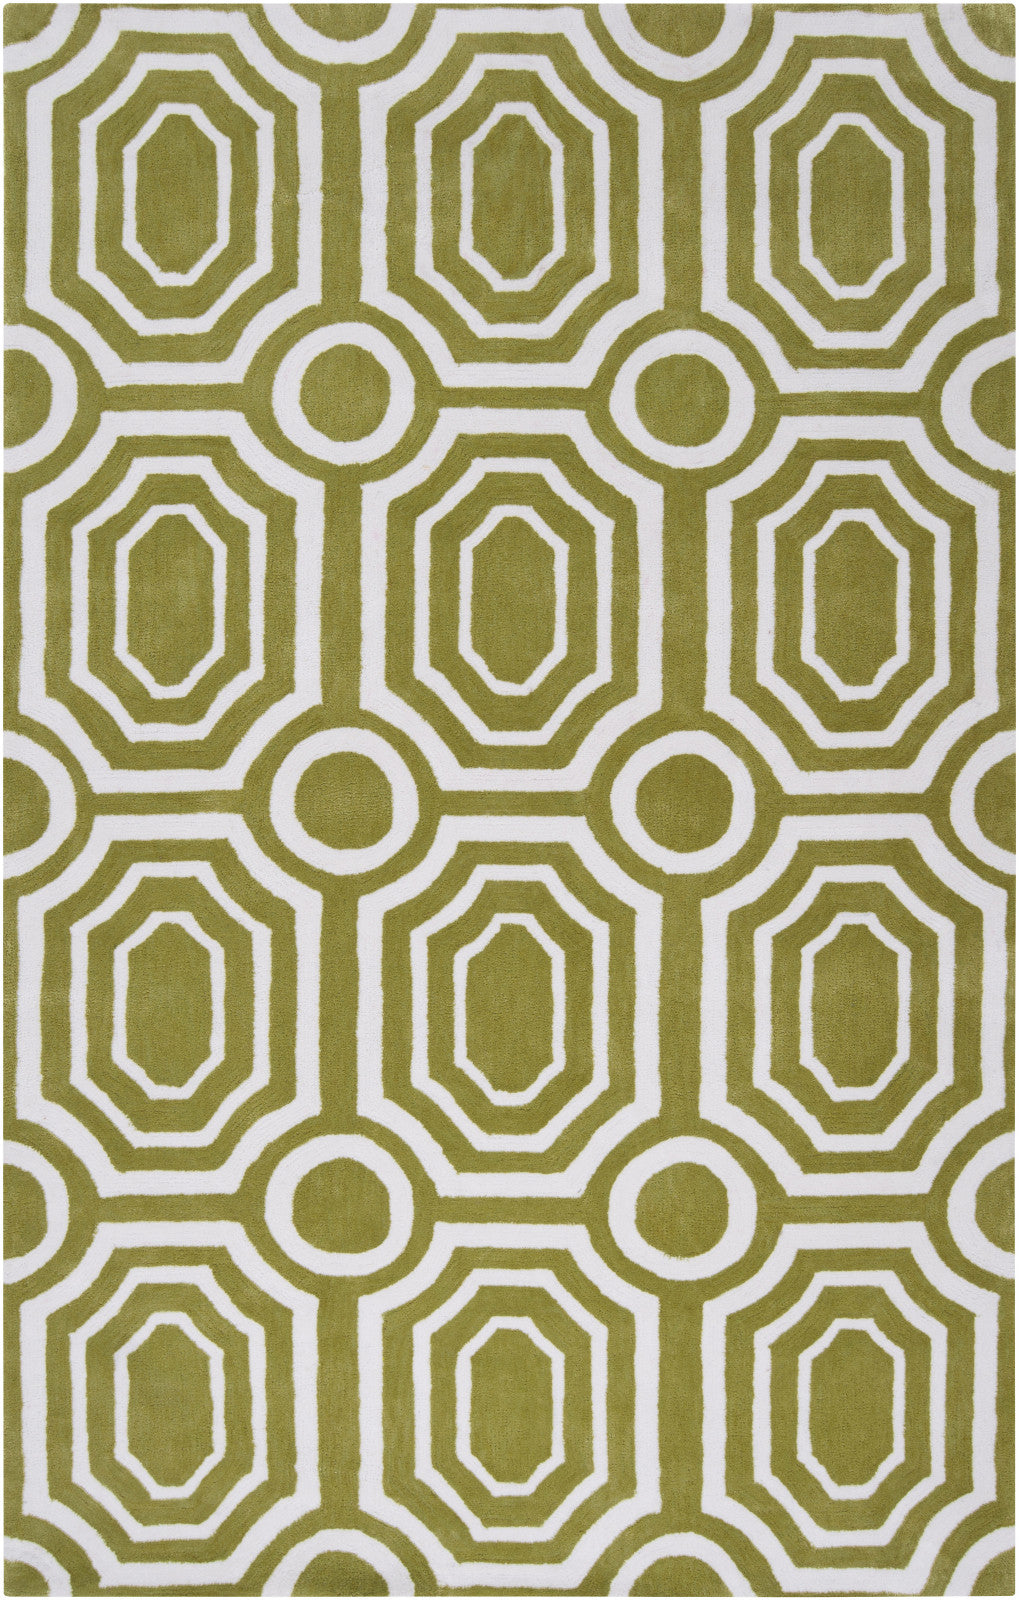 Surya Hudson Park HDP-2016 Area Rug by angelo:HOME